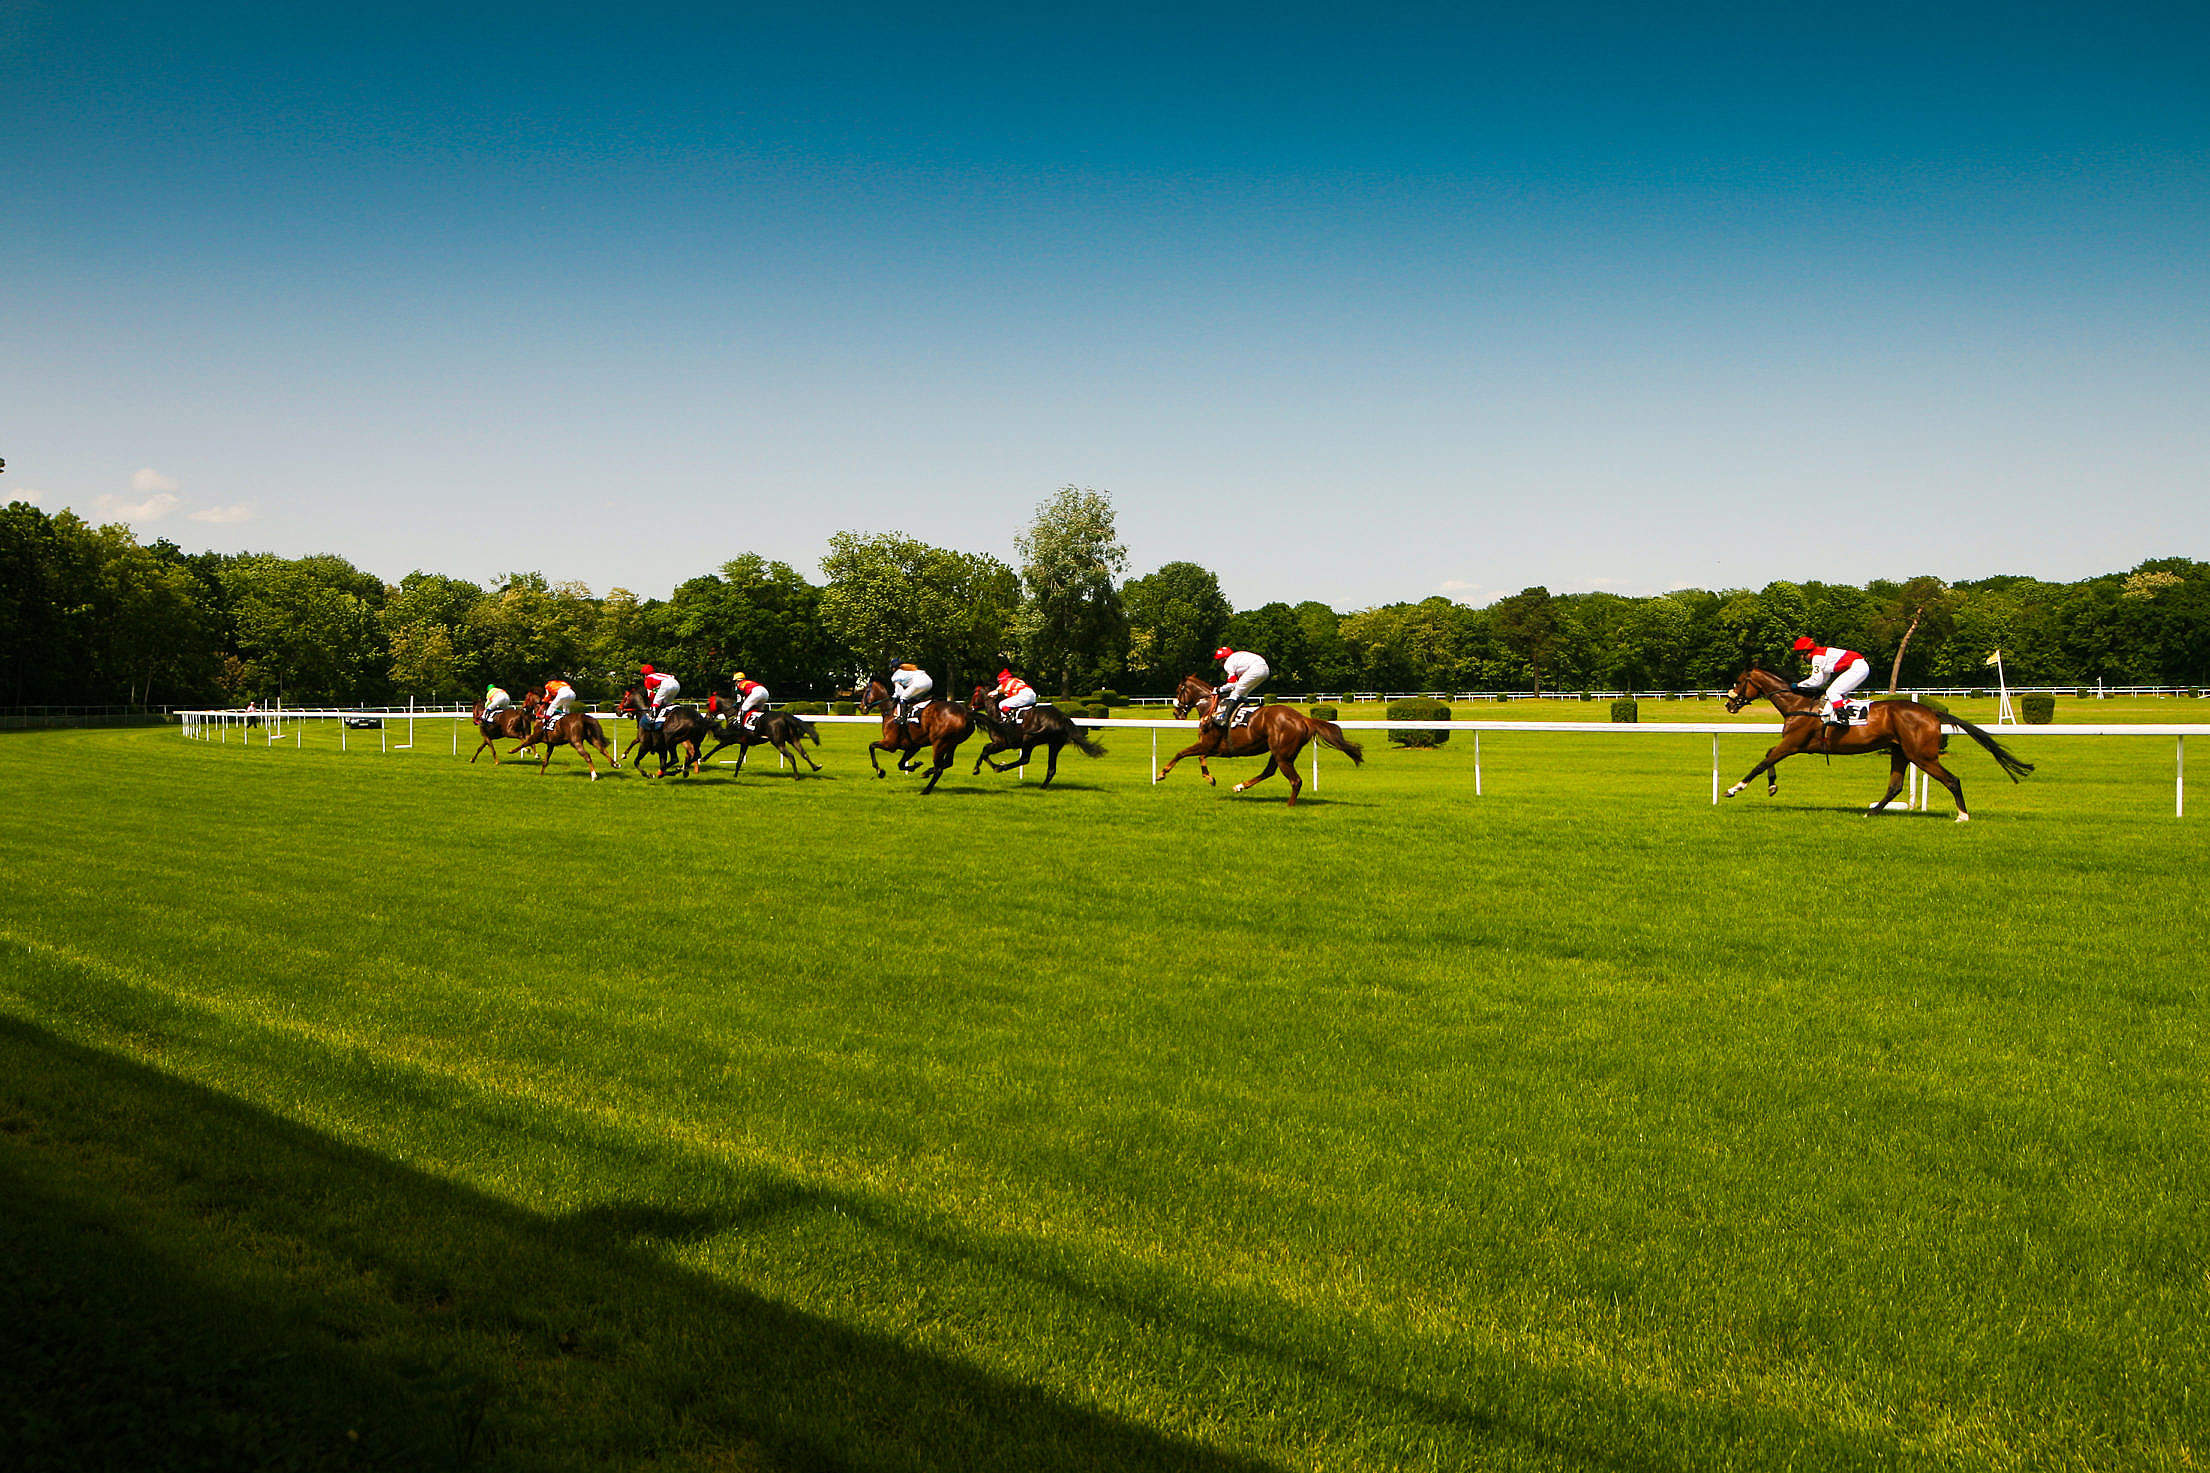 Horse Racing Oval Track Free Stock Photo